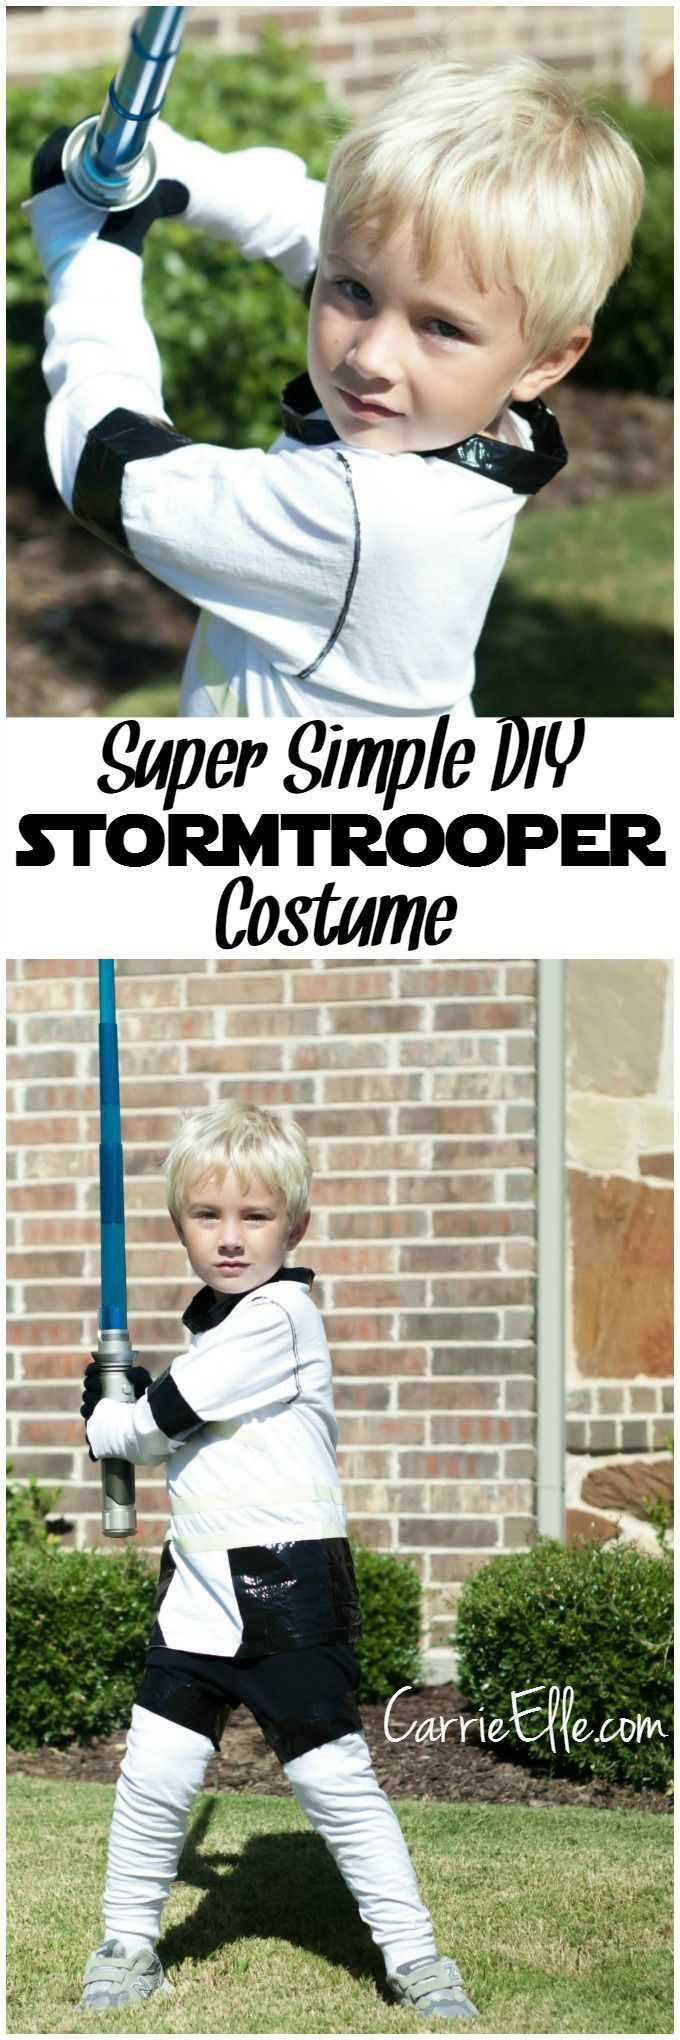 This super simple DIY Stormtrooper costume is perfect for Halloween or any Star Wars Rebels fan! NO sewing involved!